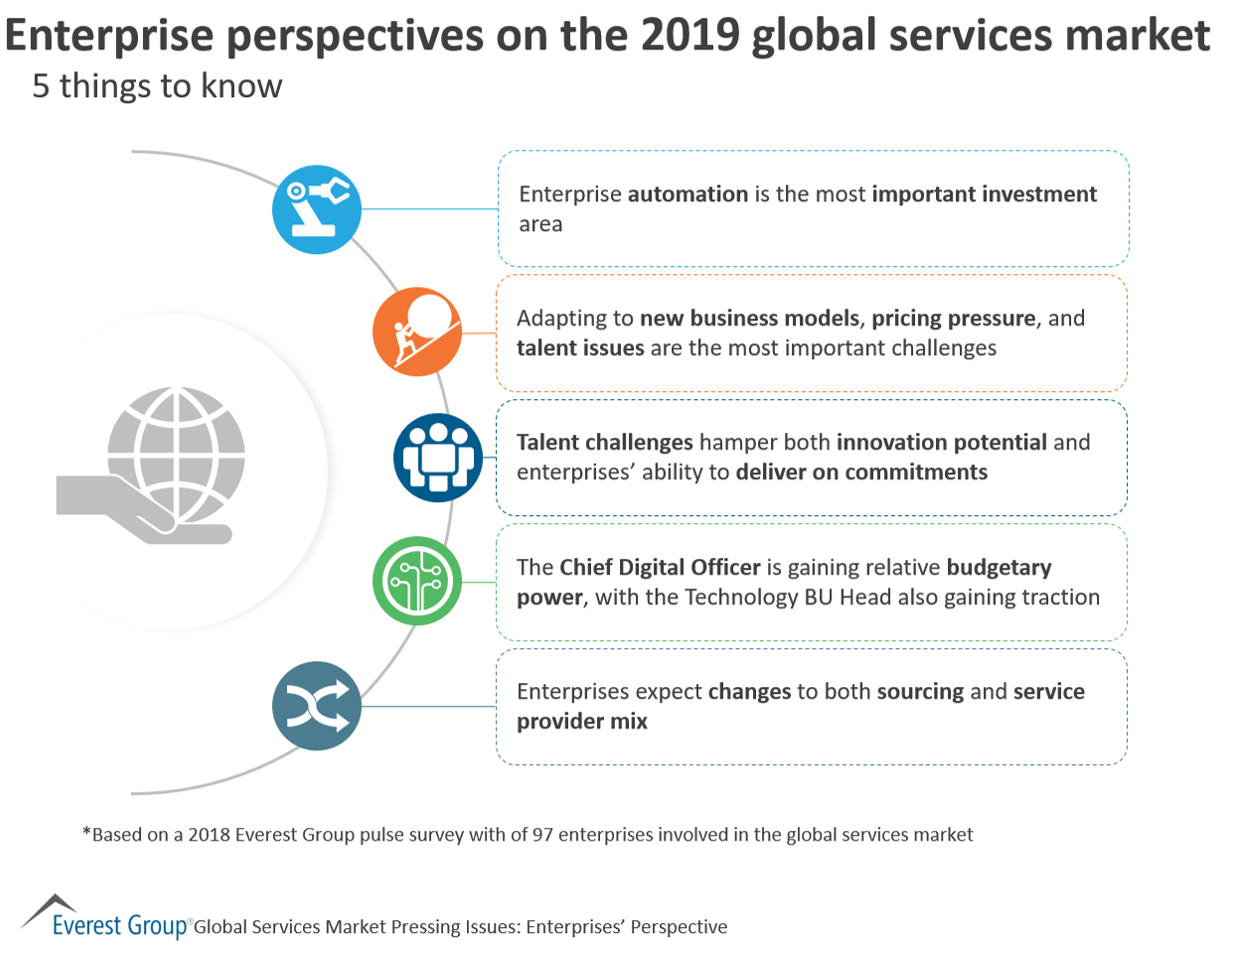 Enterprise perspectives on the 2019 global services market